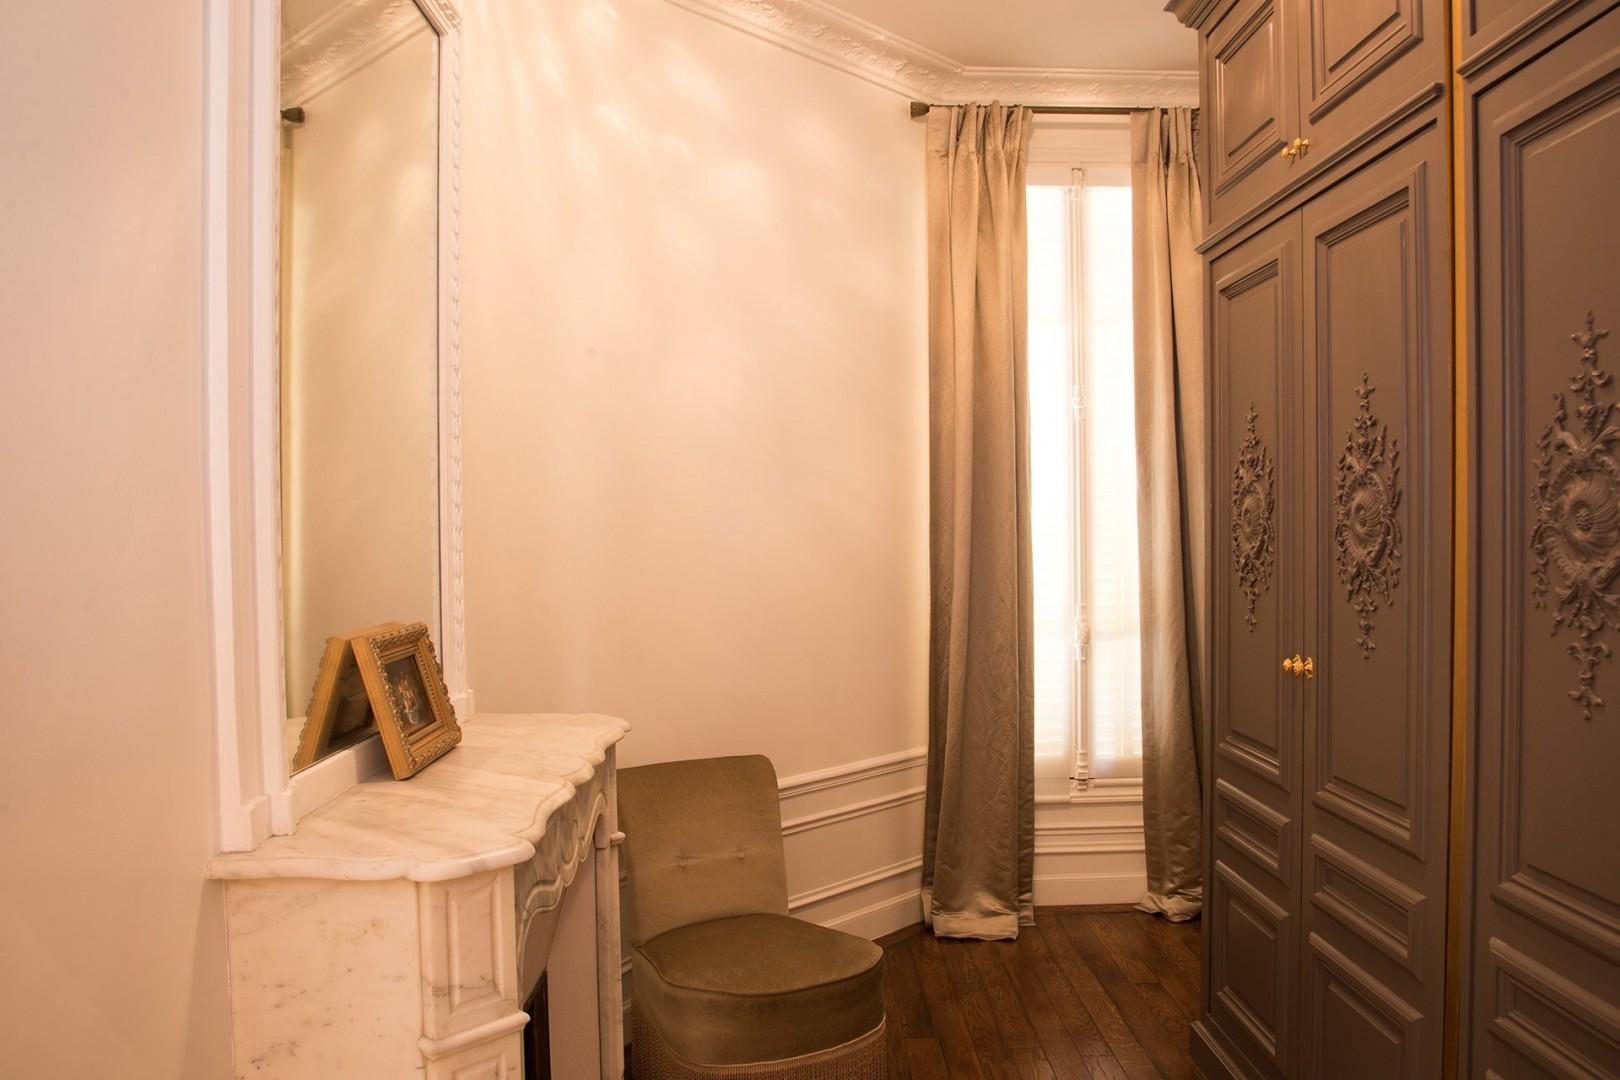 The apartment feature a rare, spacious dressing room.